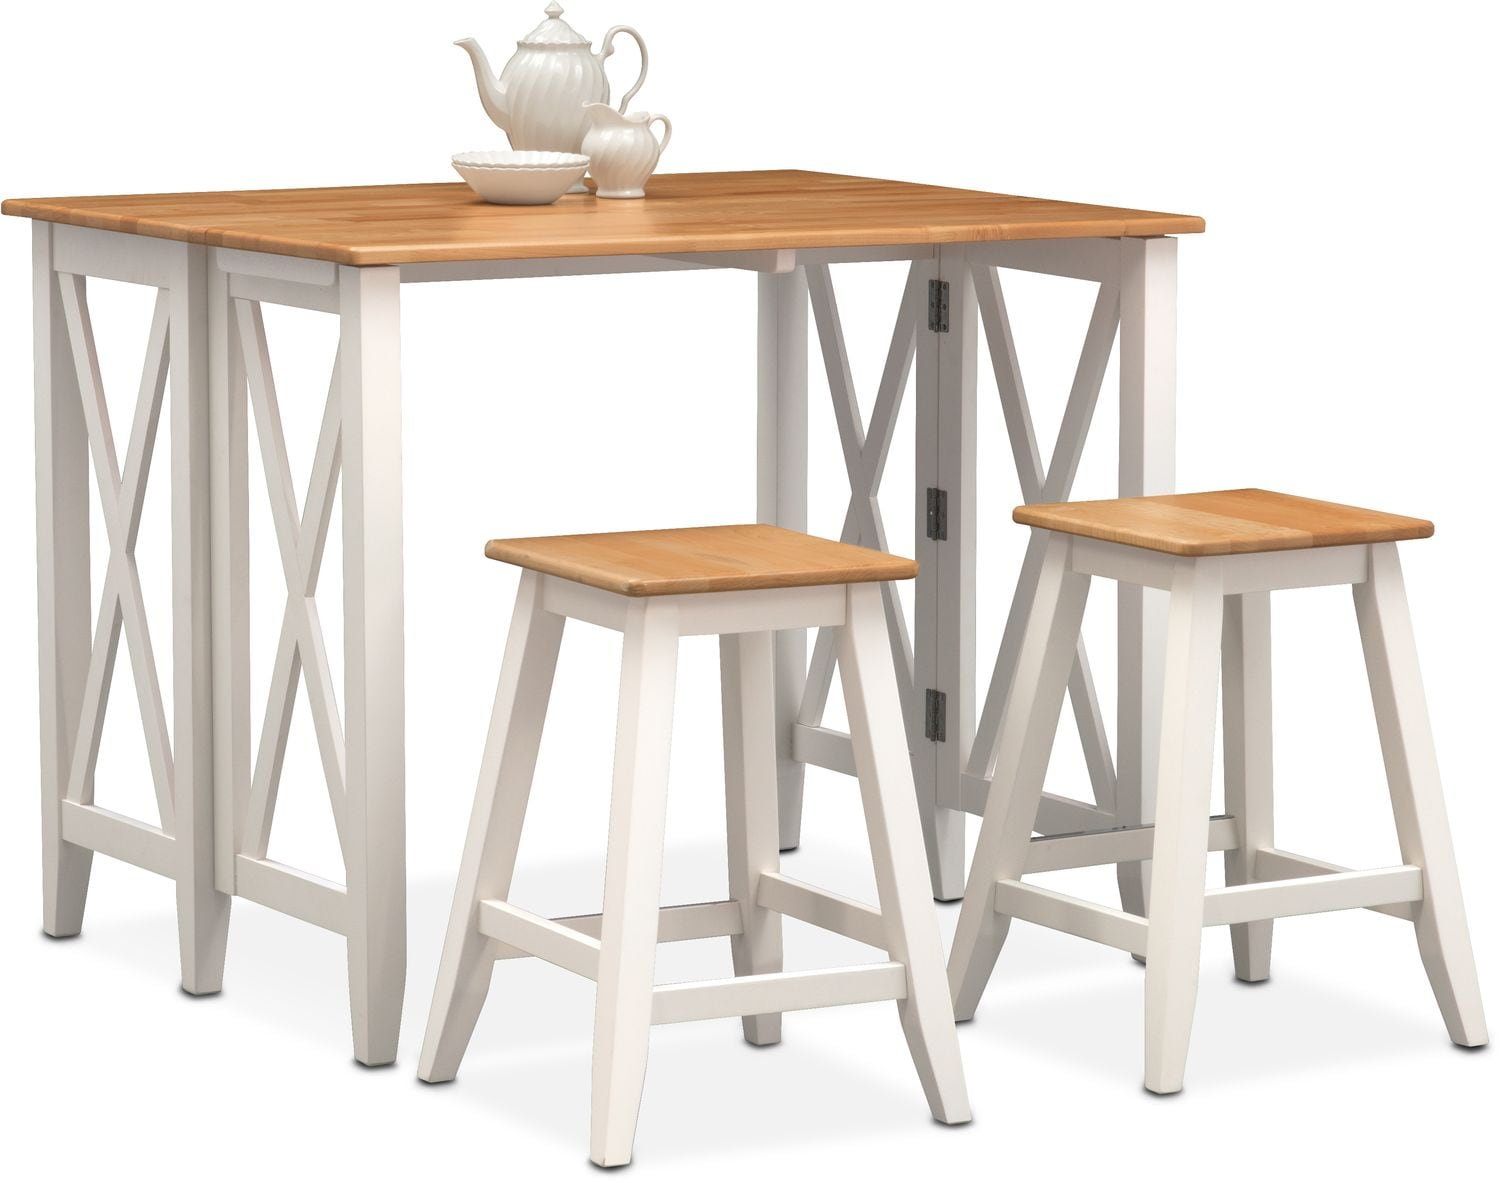 White Breakfast Bar nantucket breakfast bar and 2 counter-height stools - maple and